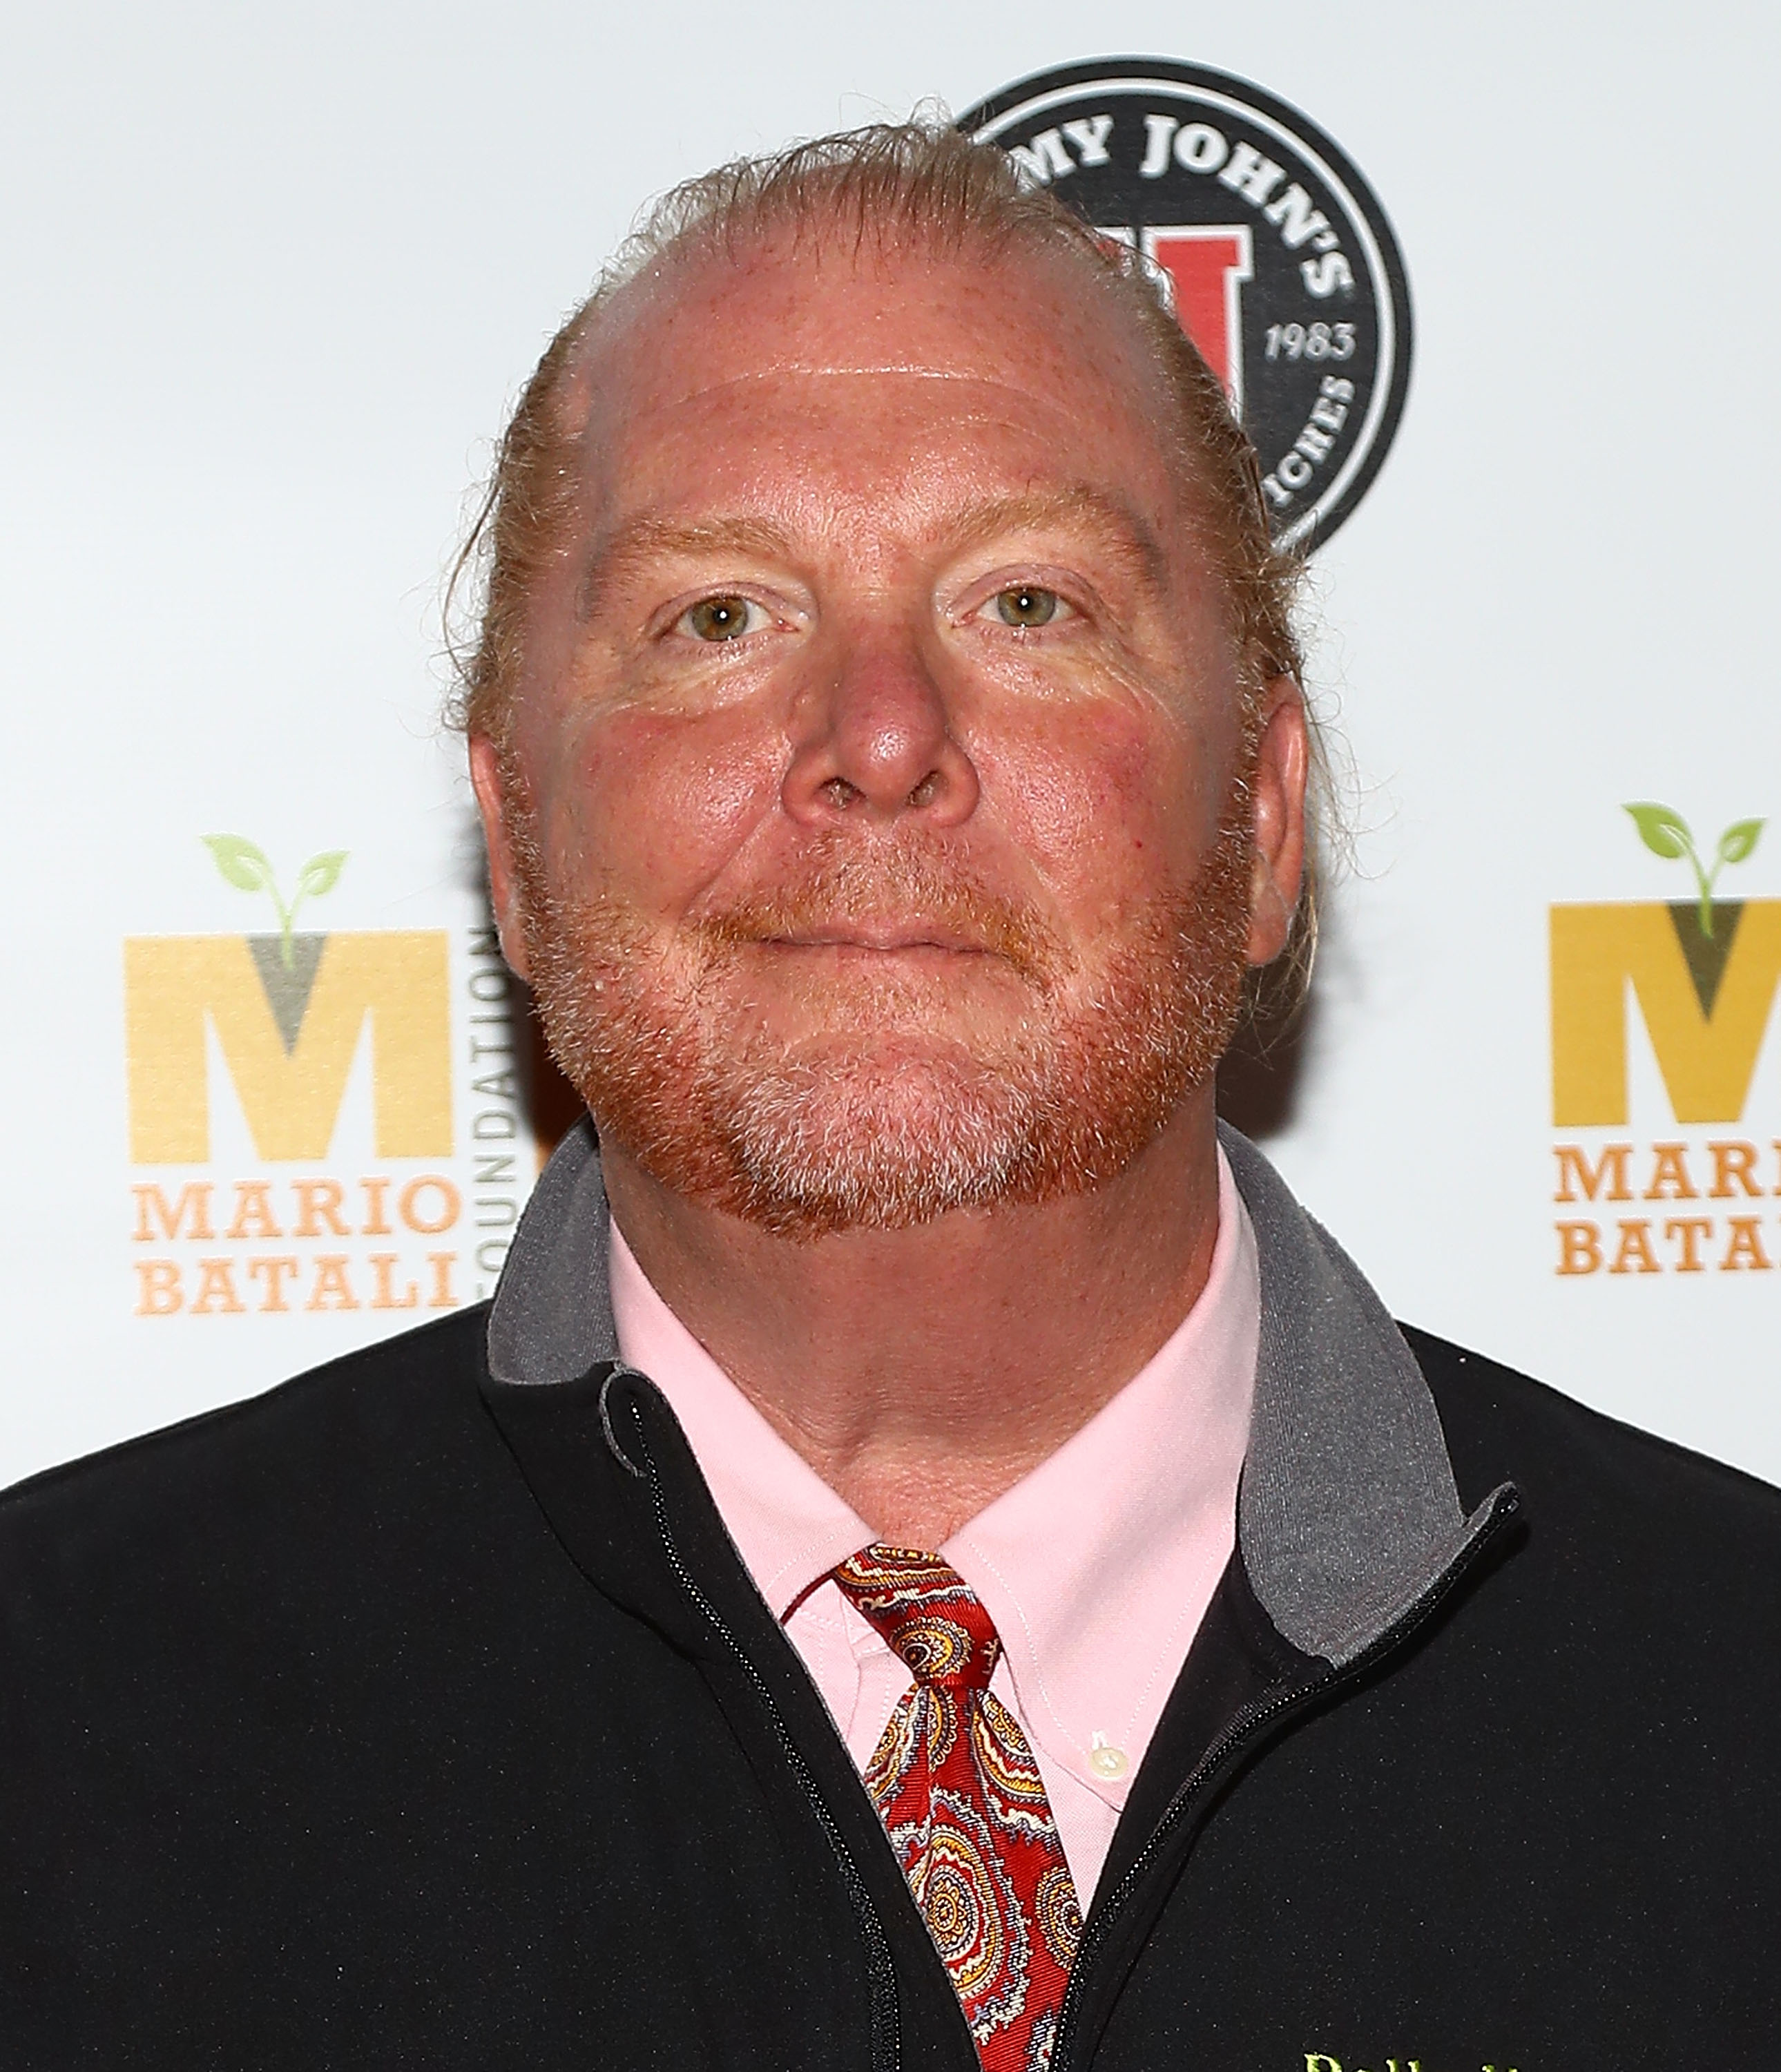 Chef Mario Batali attends a dinner for his foundation on Oct. 15, 2017 in New York City. Batali is reportedly under investigation by the New York Police Department for sexual misconduct